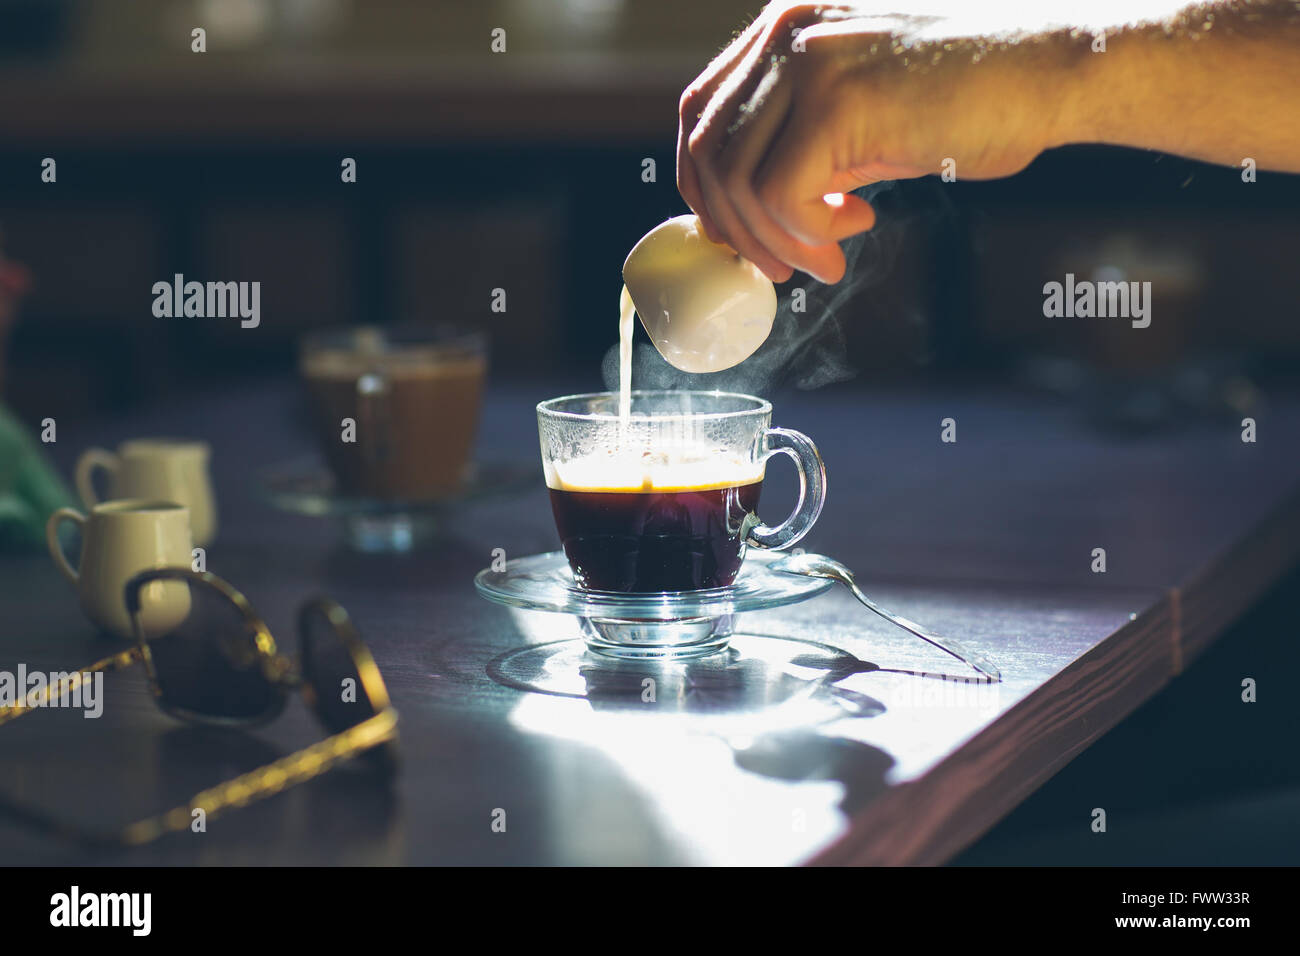 coffee with cream on table - Stock Image